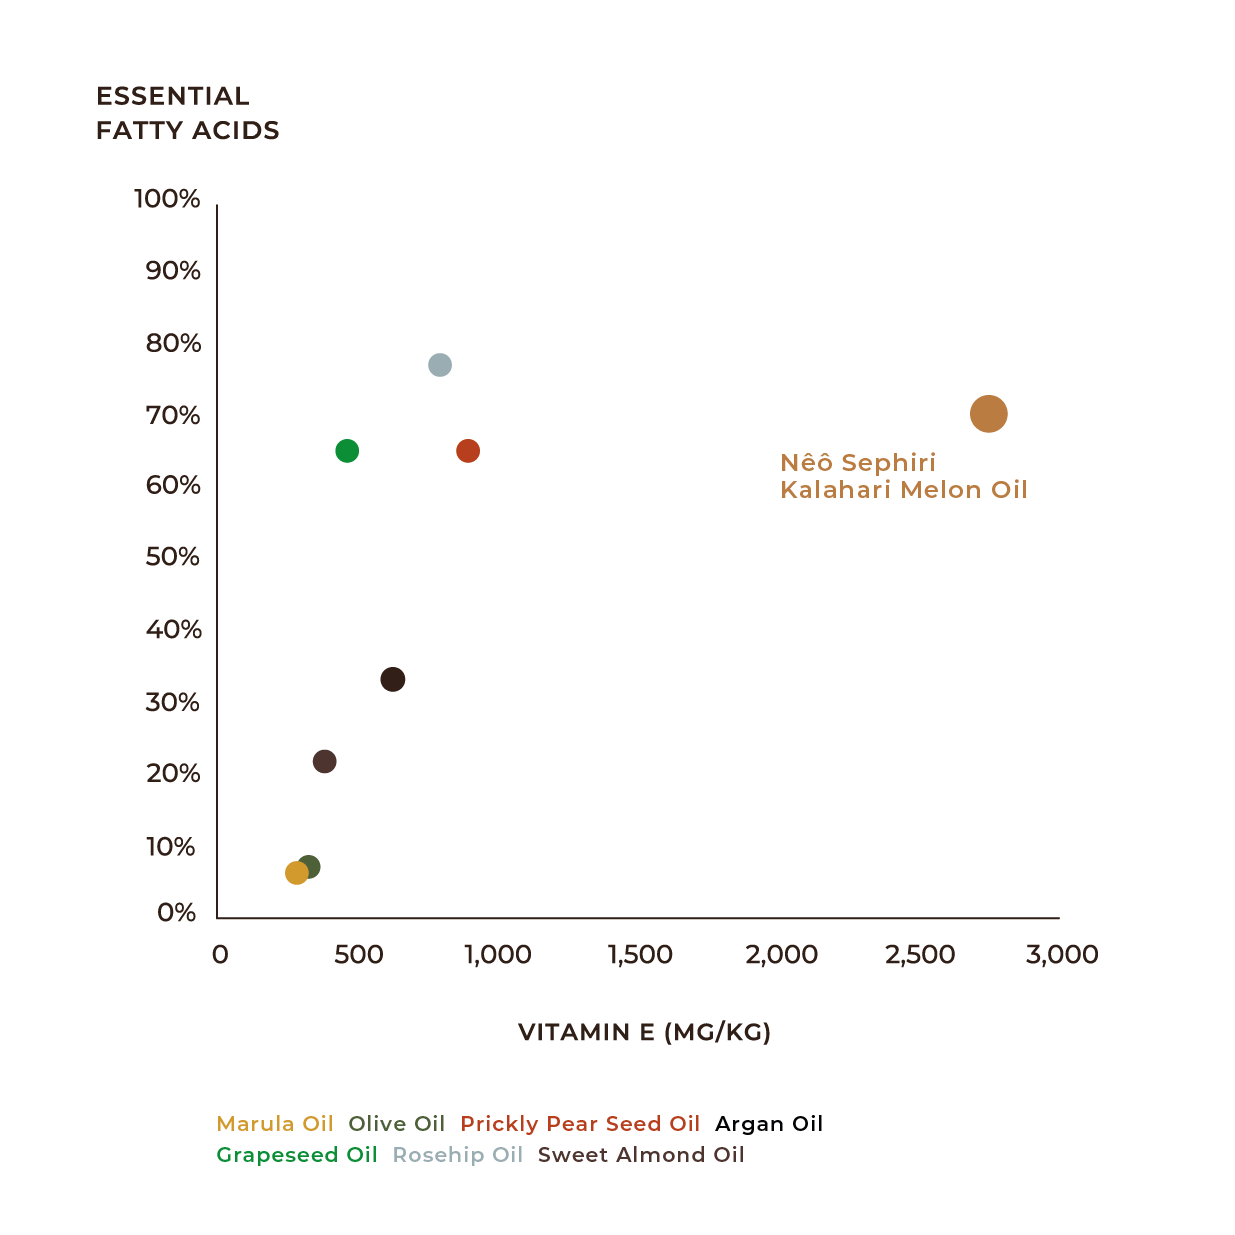 A Graph of Natural Plant Oils To Show That Kalahari Melon Seed Oil Is The Best Facial Oil Because It is Rich In Vitamin E and Essential Fatty Acids Compared to Argan Oil, Olive Oil, Rosehip Oil, Marula Oil, Grapeseed Oil, Sweet Almond Oil and Prickly Pear Seed Oil